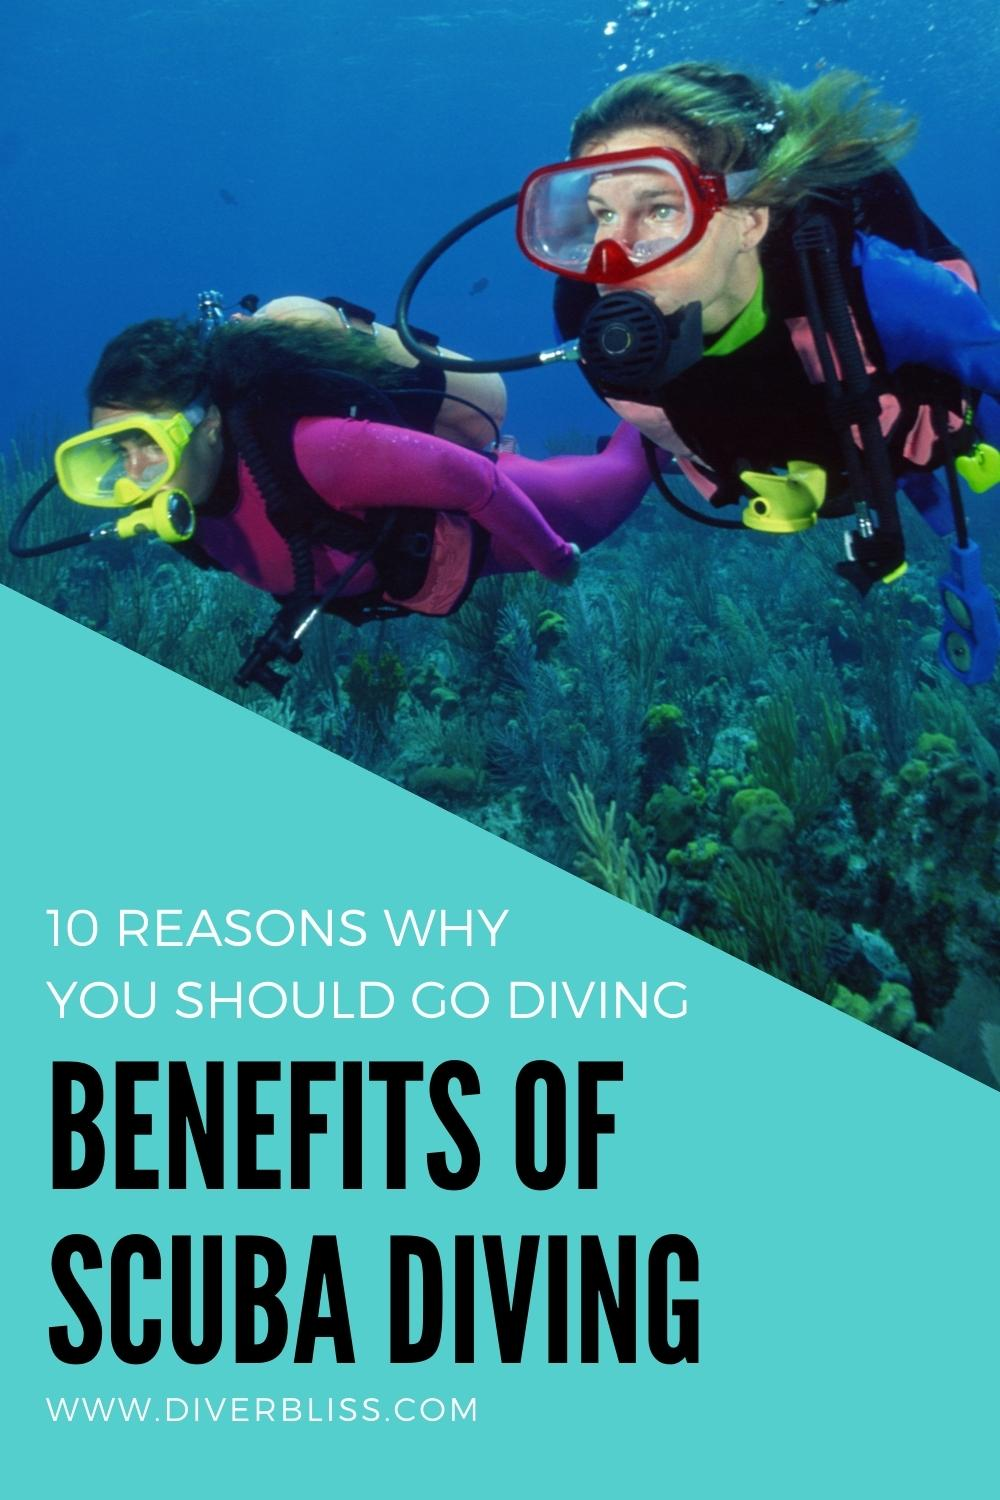 Benefits of diving: 10 reasons why you should go diving